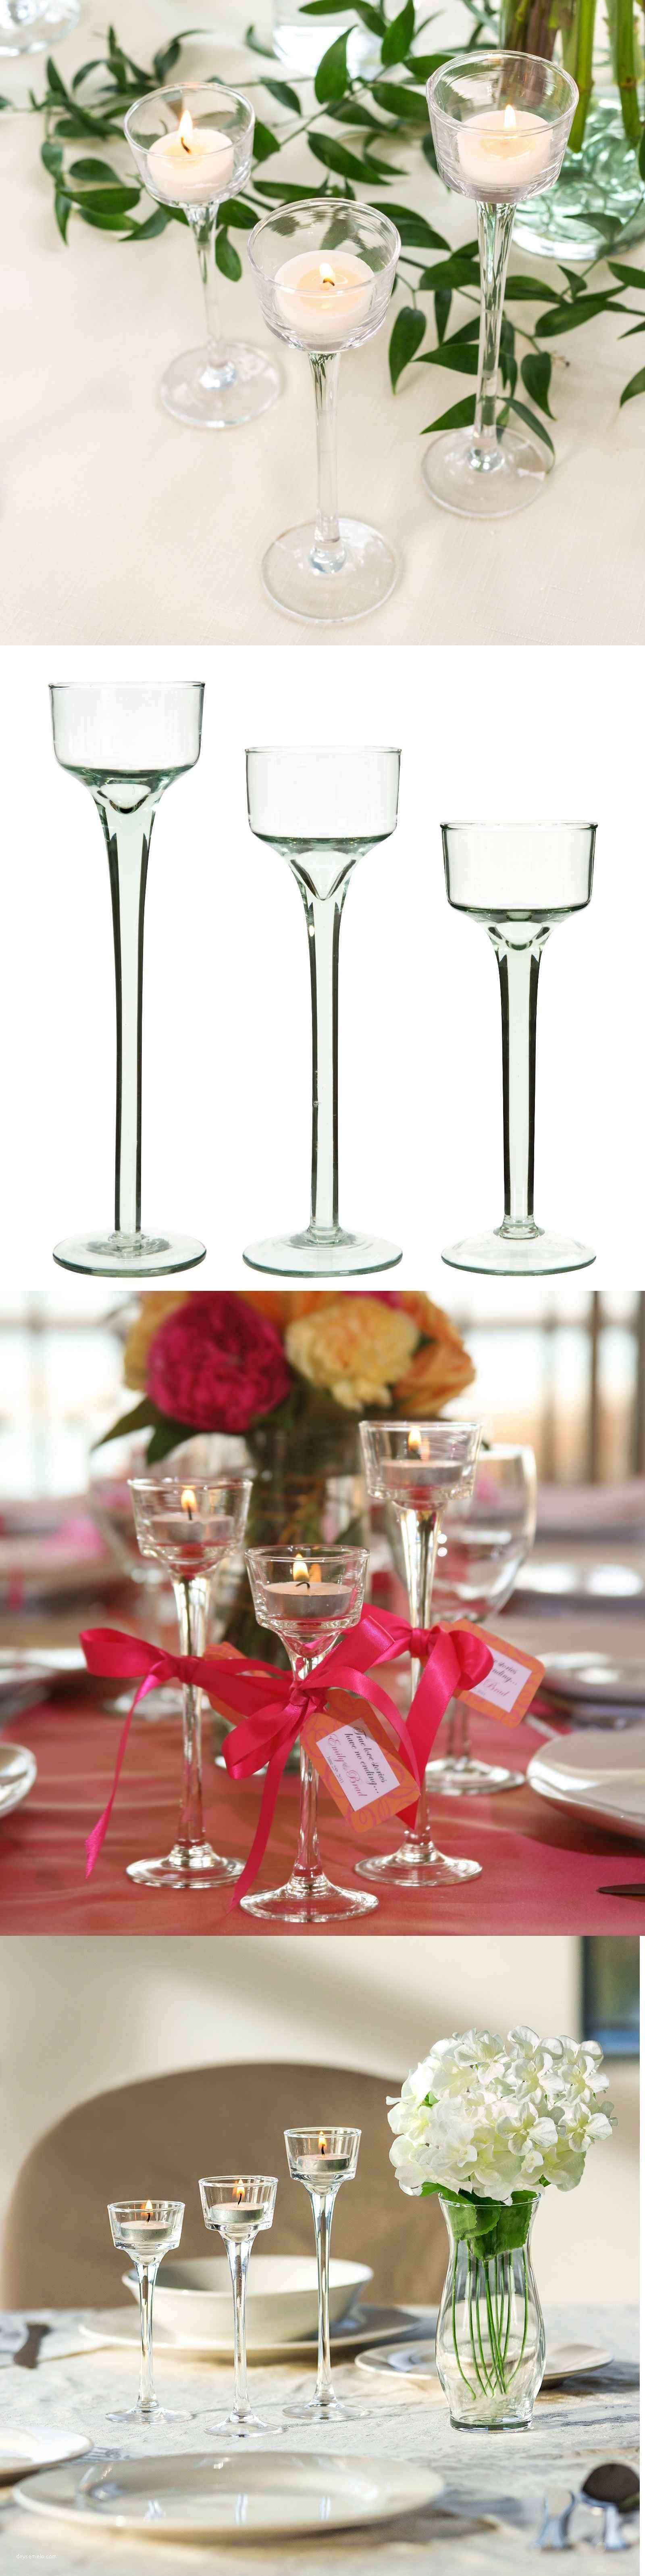 18 Awesome Tall Plastic Vases Bulk 2021 free download tall plastic vases bulk of best candles in bulk for wedding from 22 creative vases in bulk for throughout best candles in bulk for wedding with faux crystal candle holders alive vases gold t